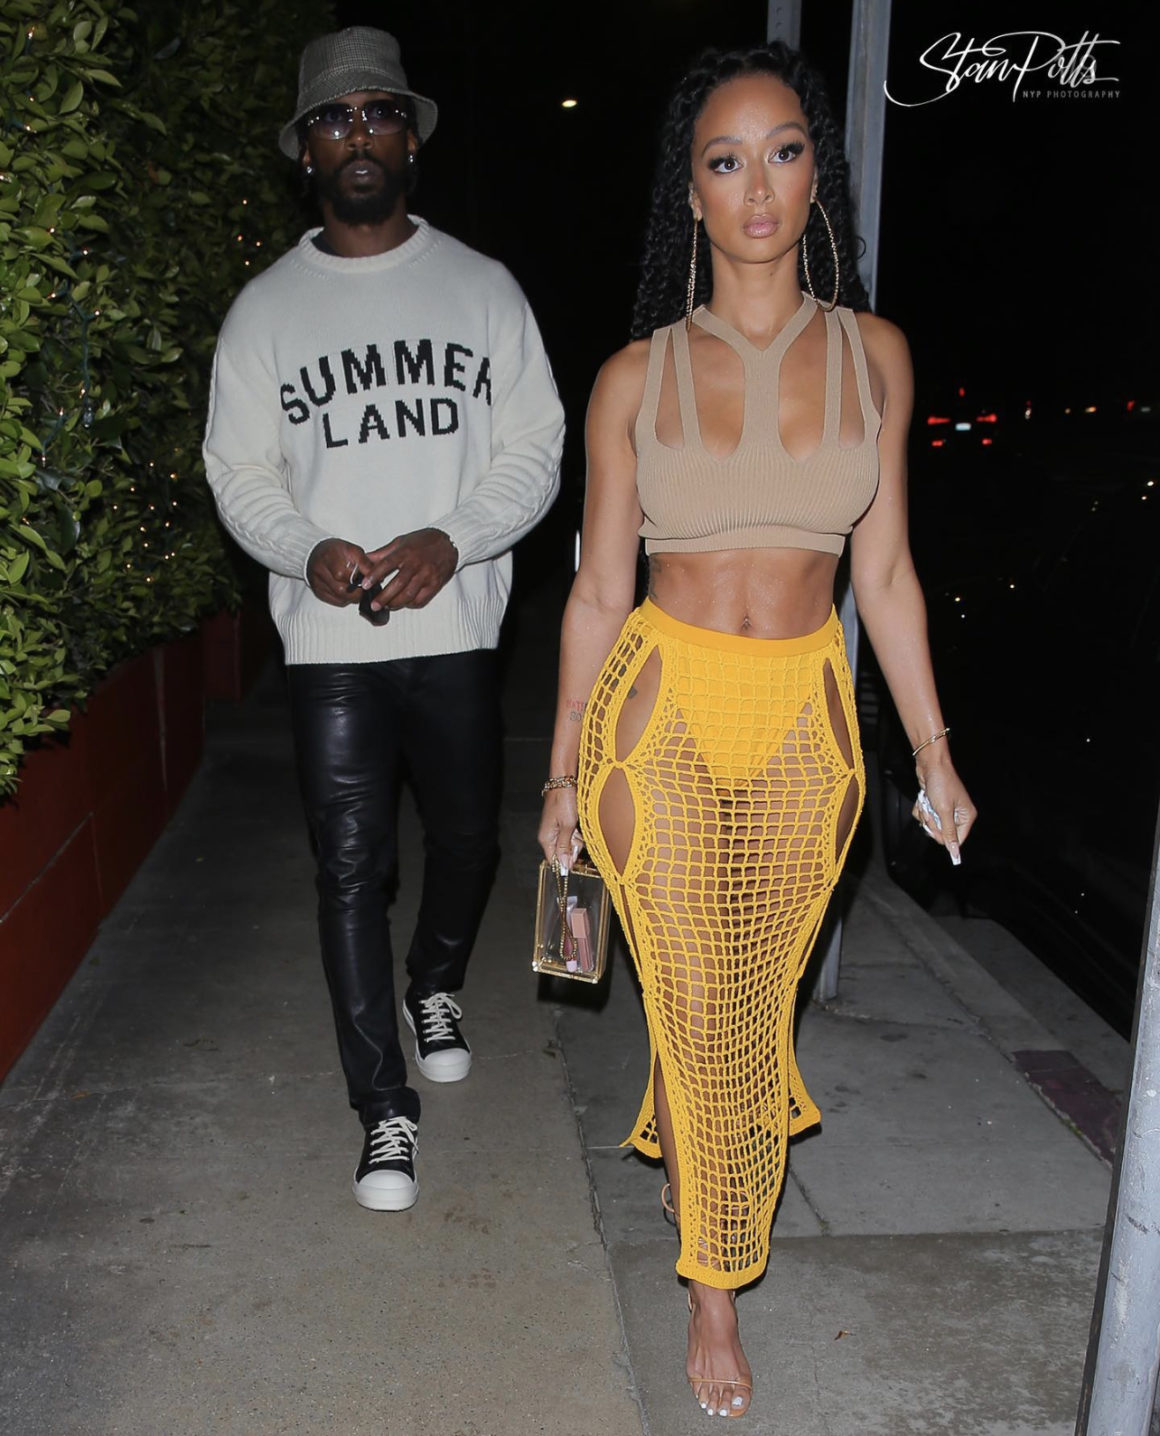 Draya Michele Spotted in Dion Lee Tan Knit Cutout Crop Top and Yellow Crochet Skirt During Outing With Tyrod Taylor in Nahmias Sweater, 1017 ALYX 9SM Black Leather Pants, Celine Plaid Bucket Hat and Rick Owens Sneakers